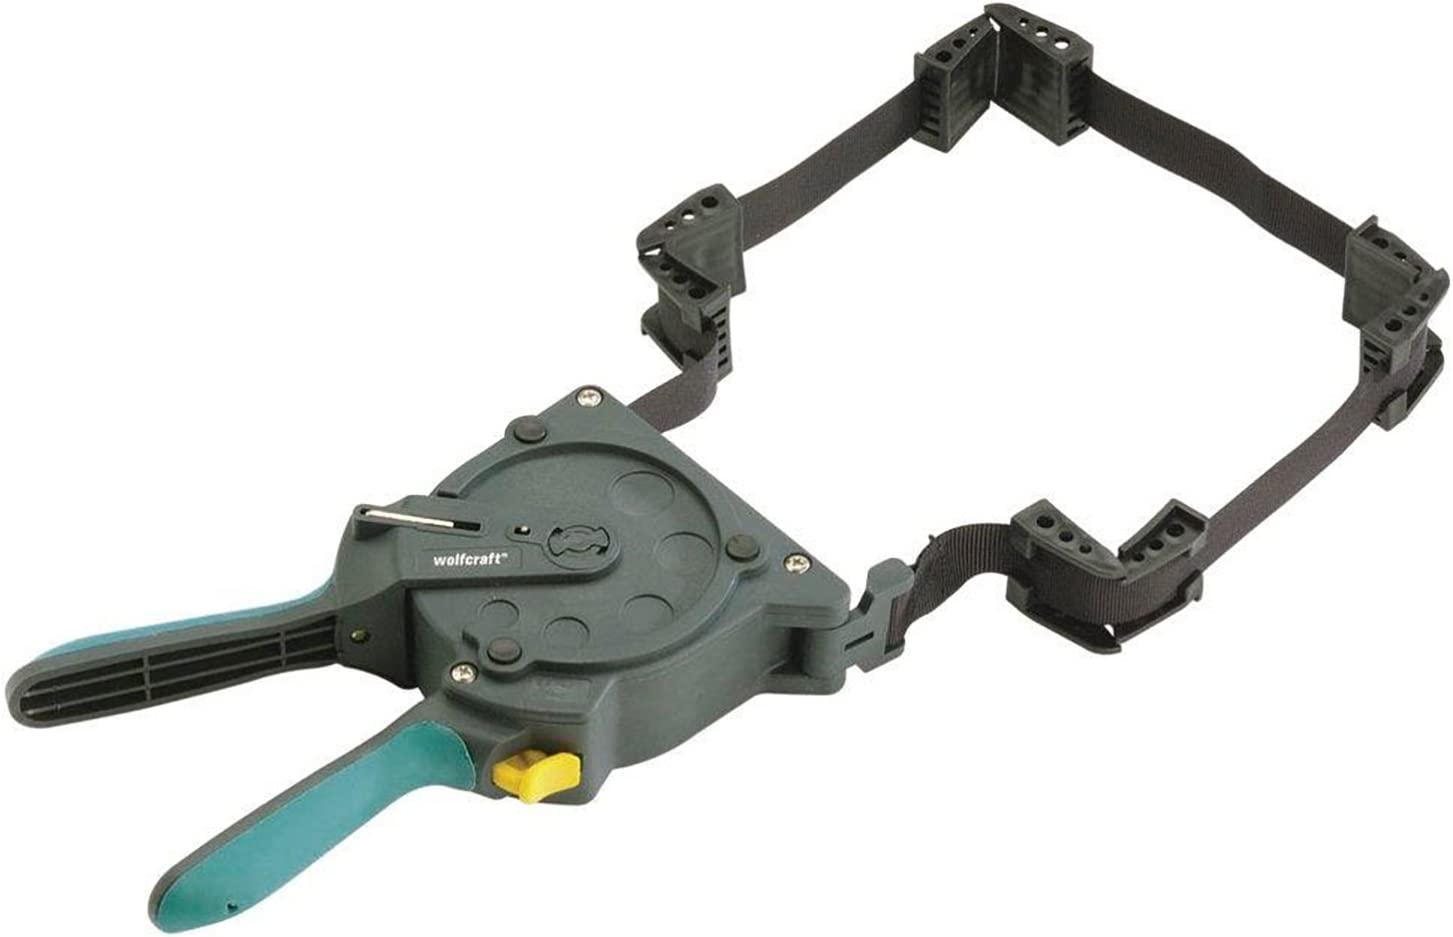 wolfcraft 3681404 One-Hand Ratcheting Band Clamp, 16